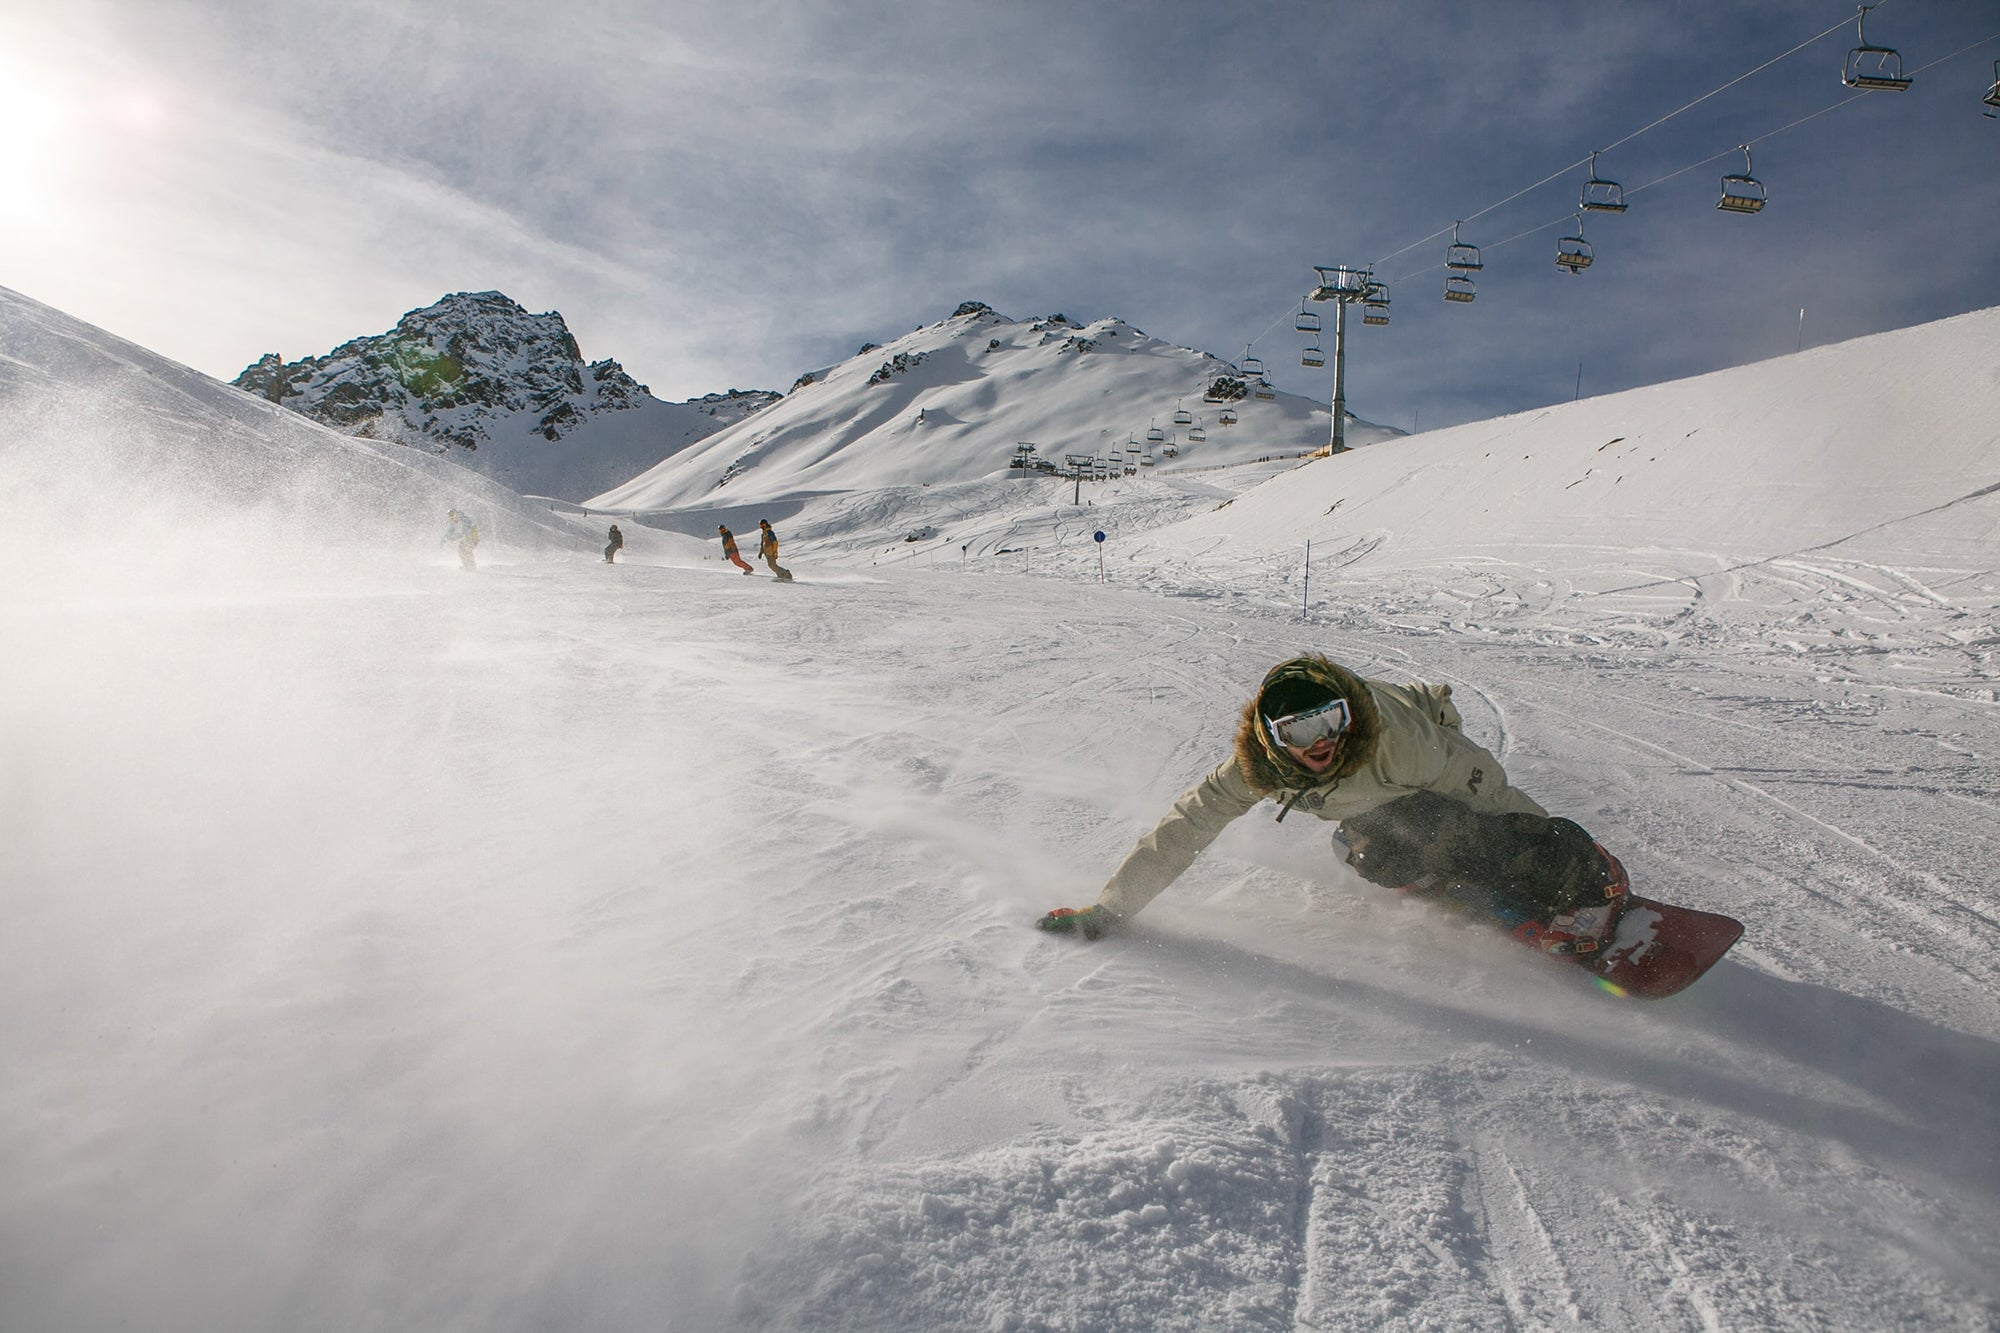 person snowboarding down a mountain wearing the best snowboard helmet